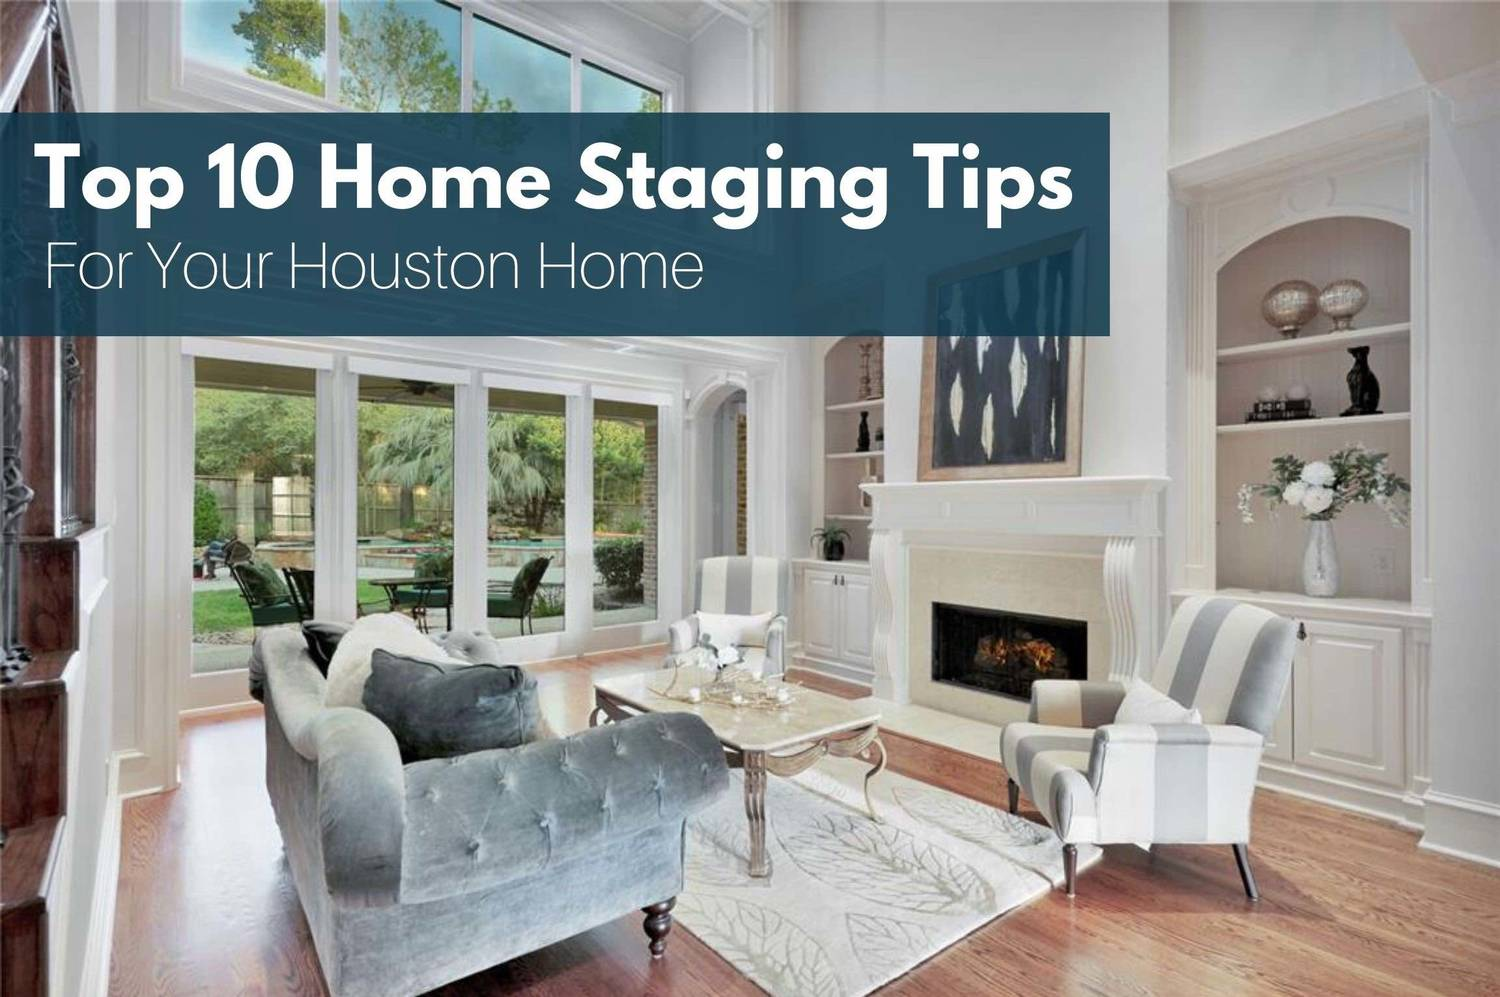 Houston Home Sellers Guide Series #3: Top 10 Home Staging Ideas For Selling Your Houston Home